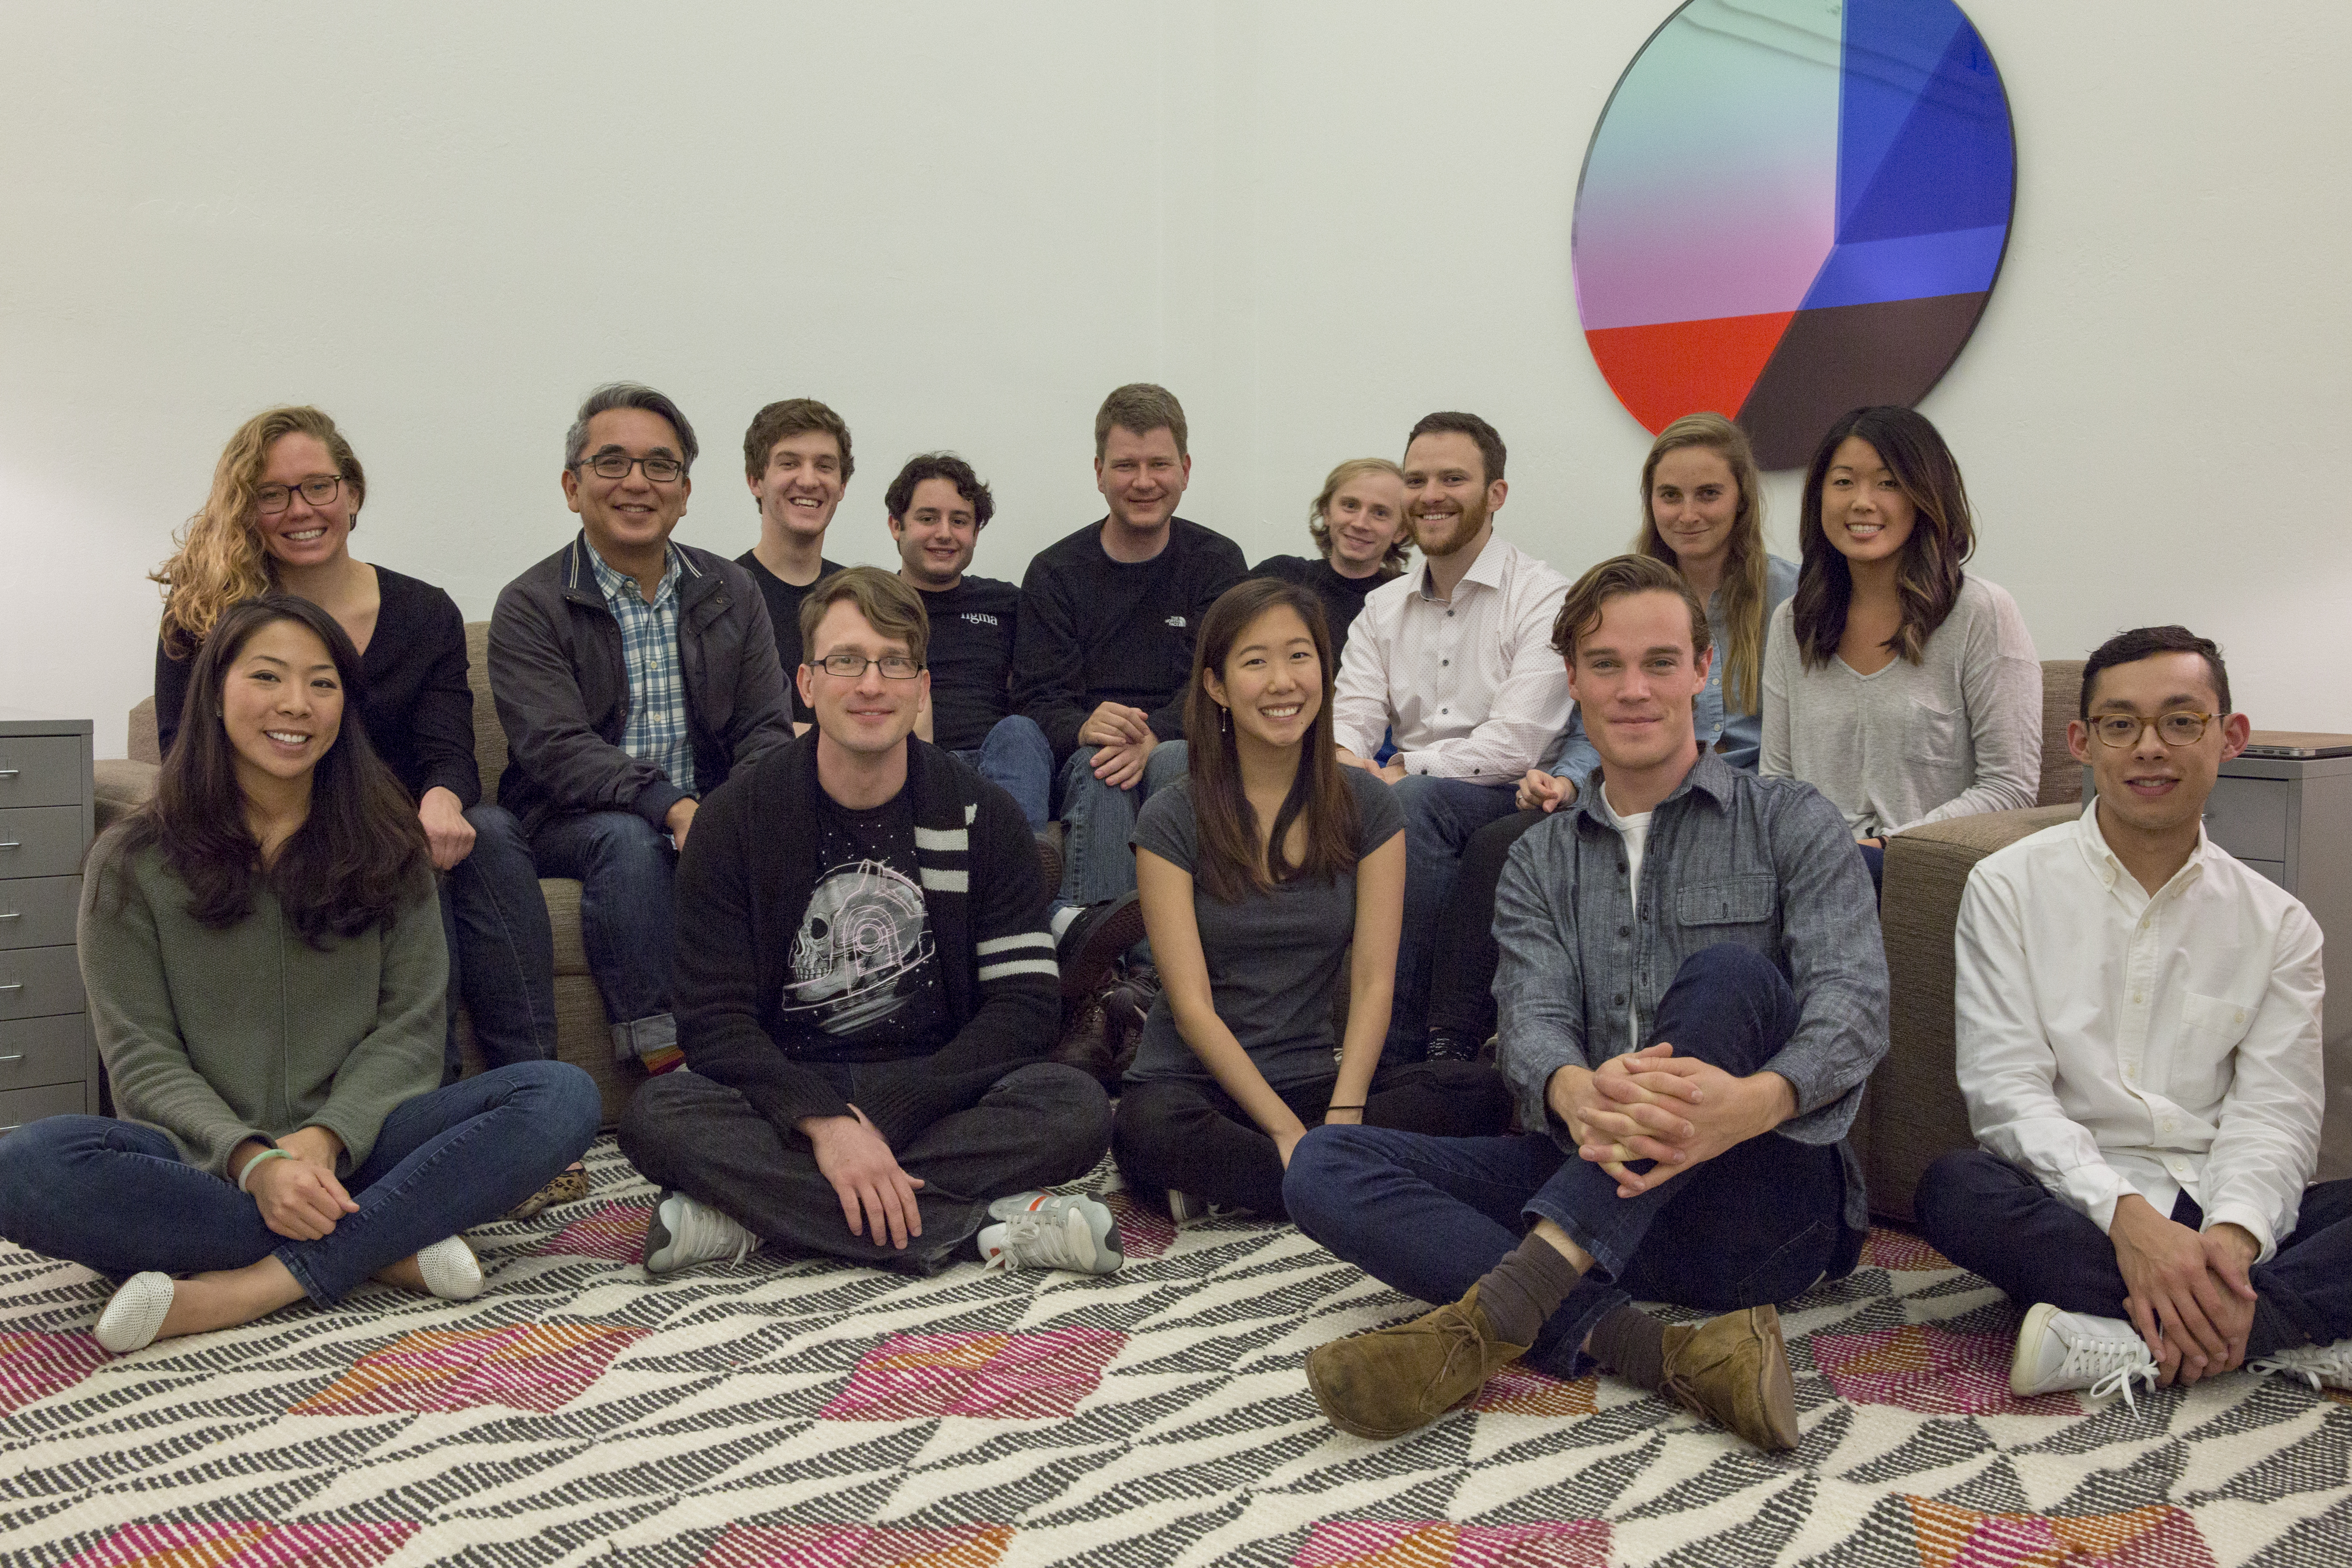 The Figma team. Cofounder and chief executive Dylan Field is fourth from left, back row. Cofounder and chief technology officer Evan Wallace is fourth from right, back row.